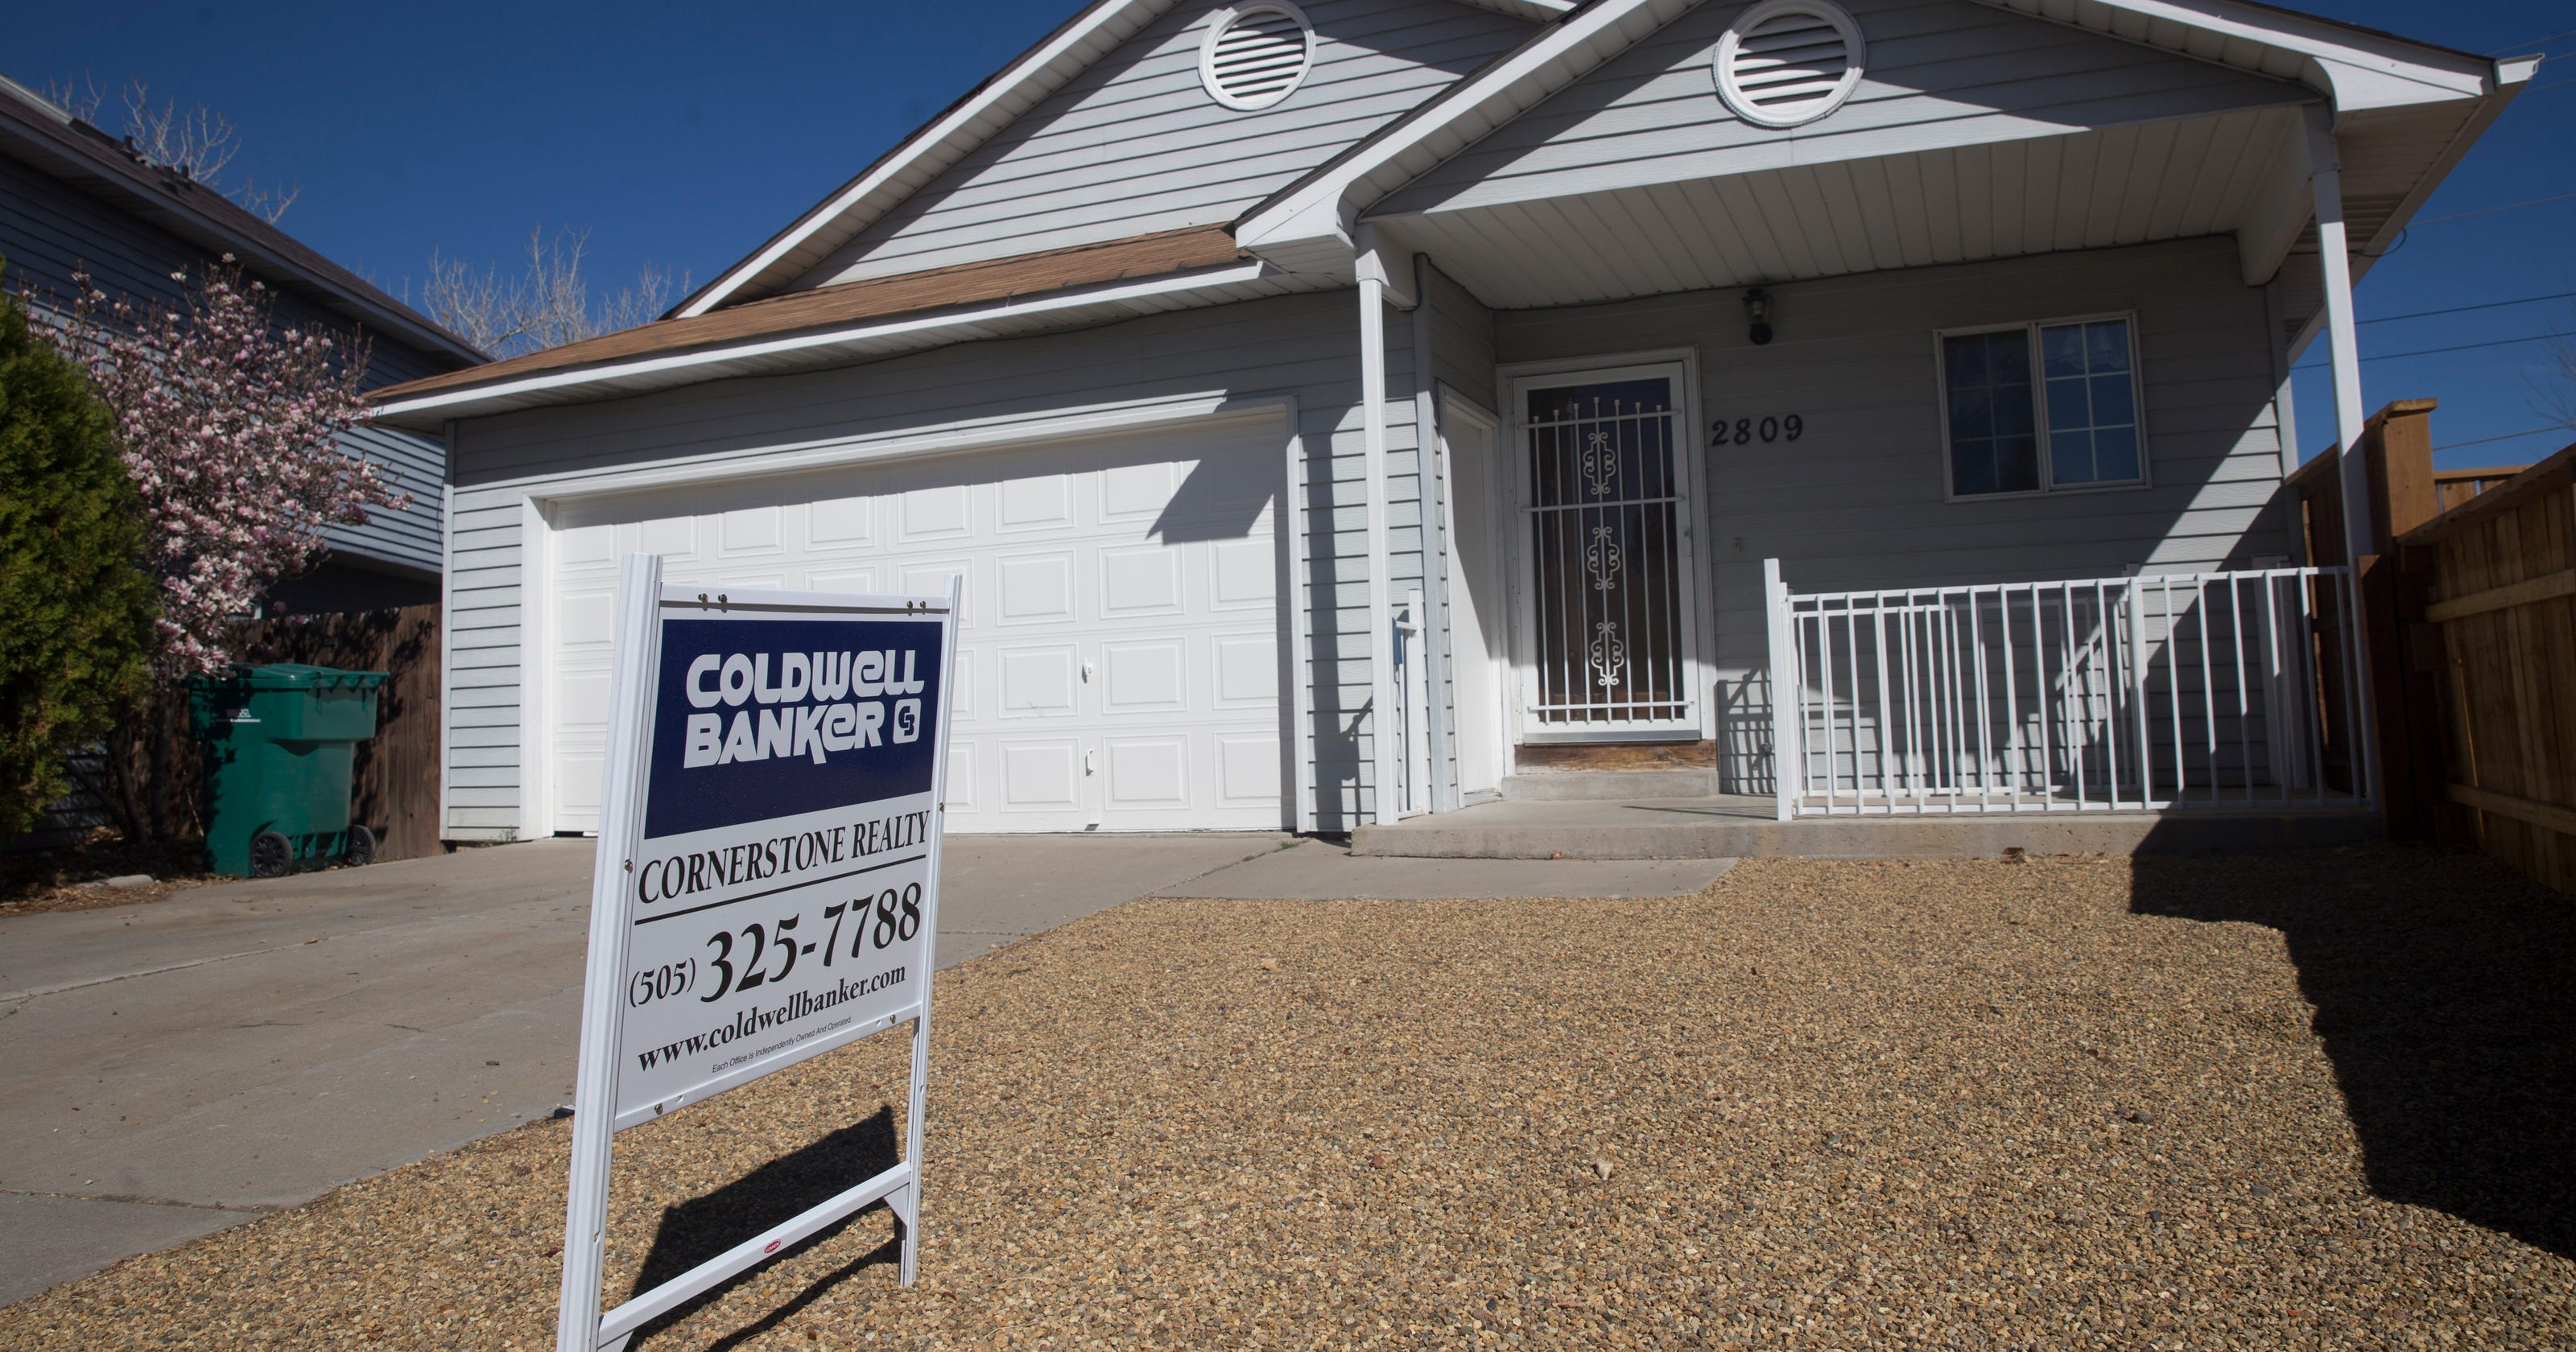 County property values remain stable, but home sales are up